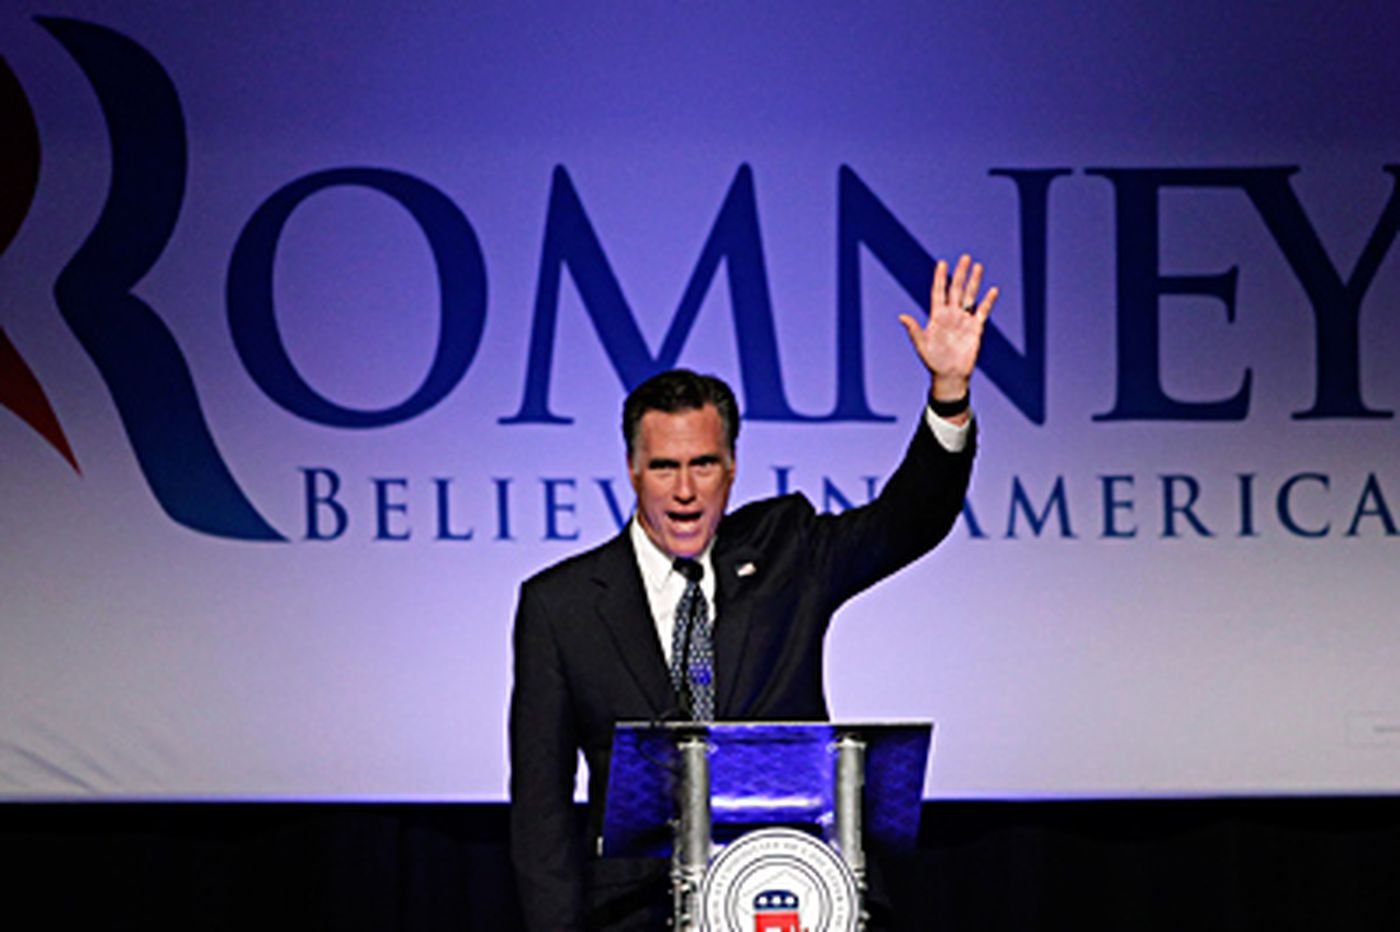 Corbett endorses Romney as best choice to defeat Obama